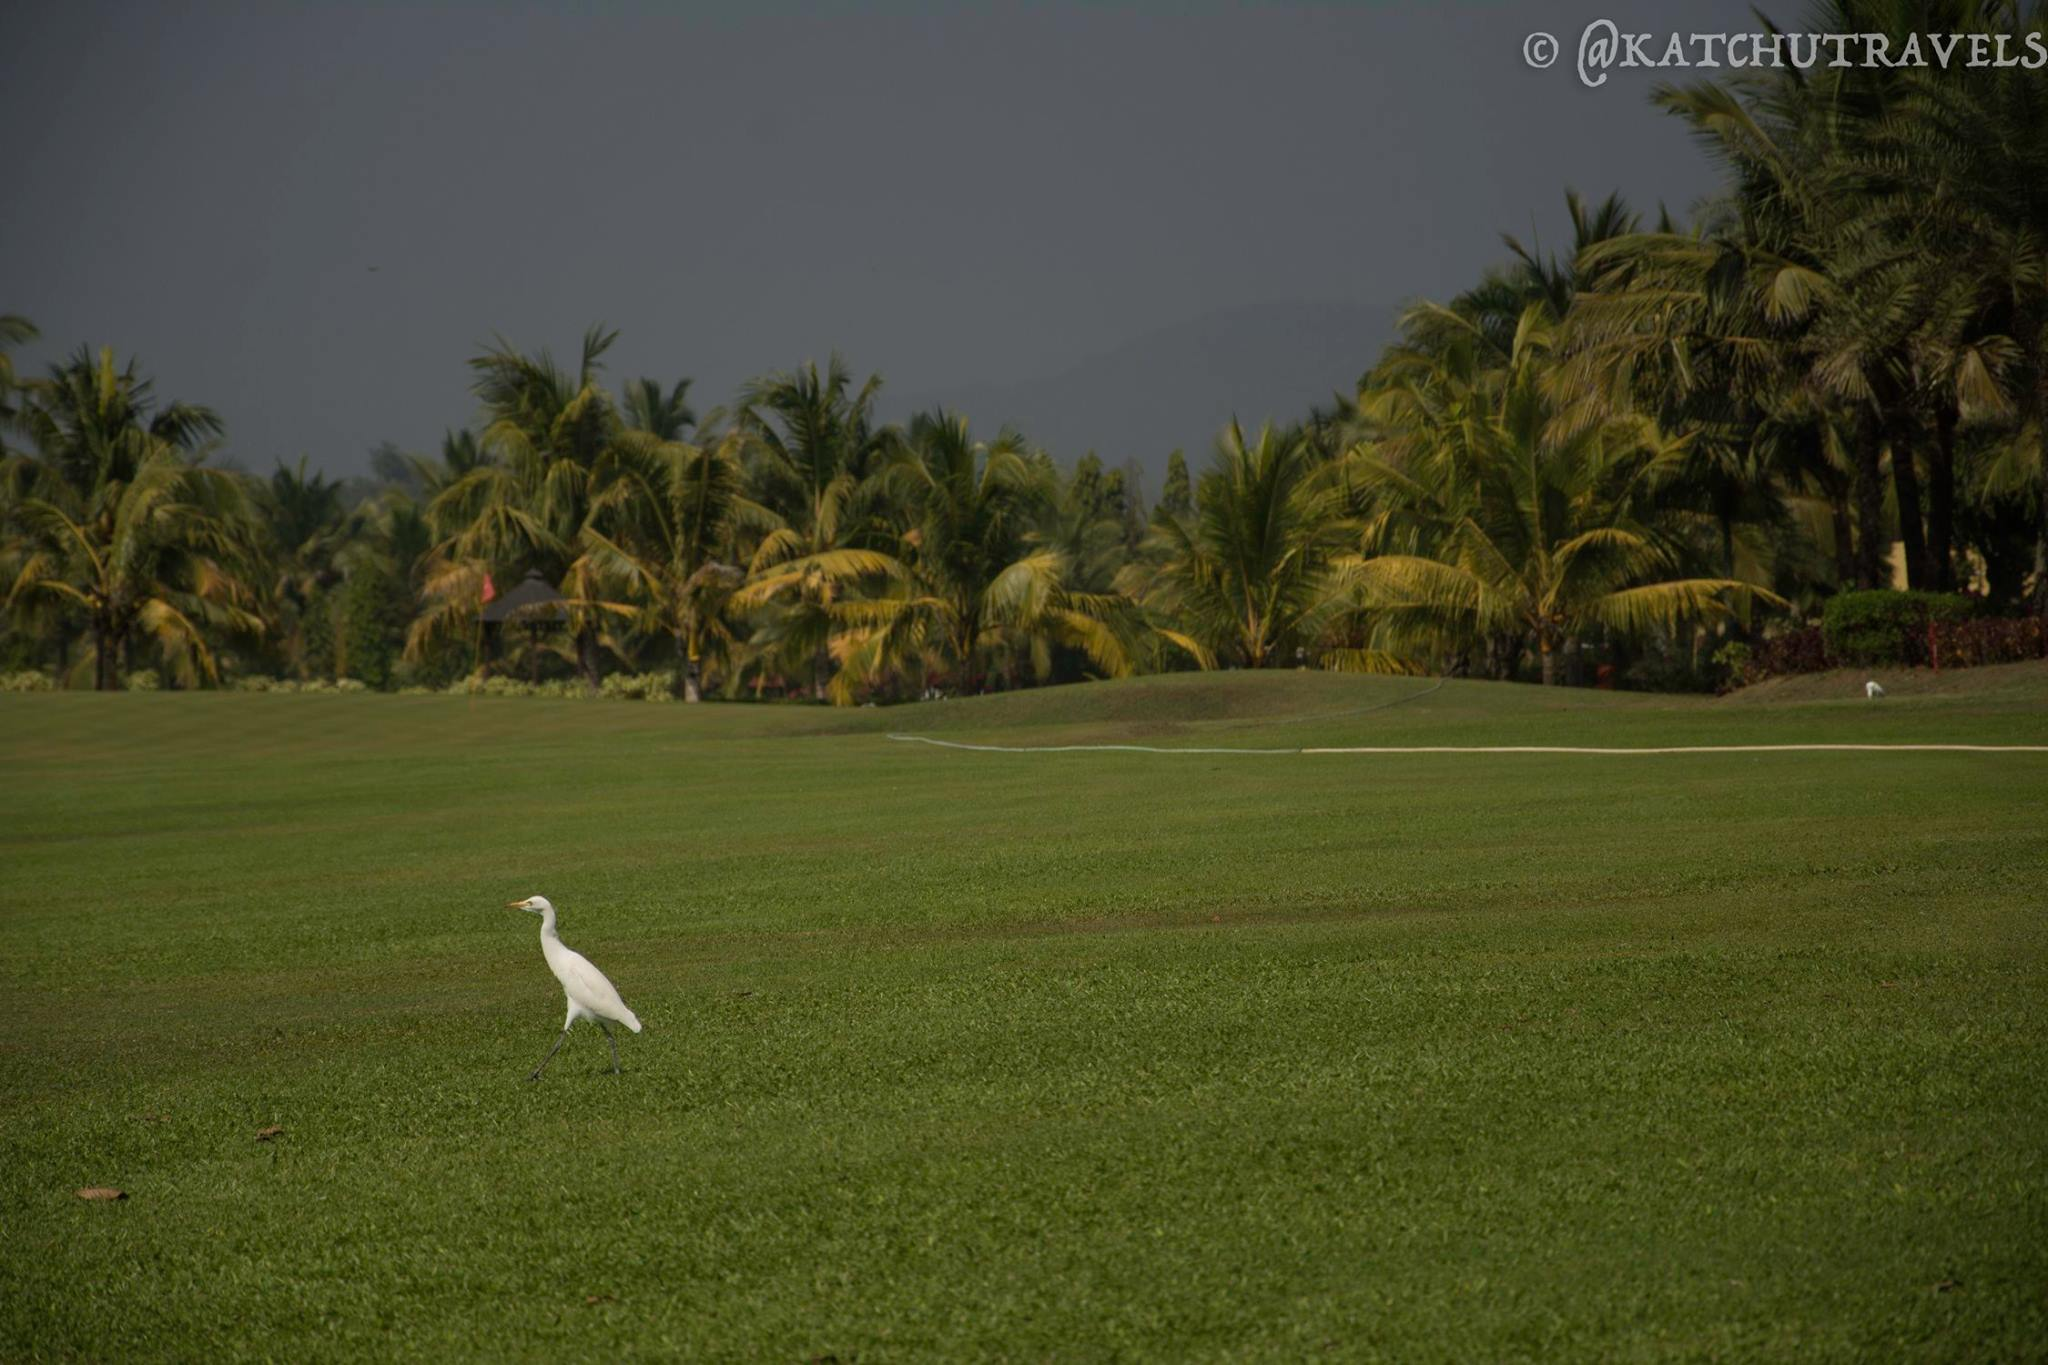 Swan on the lawns of the Lalit-Intercontinental Golf Course. We passed them on a bike parallel to the course!